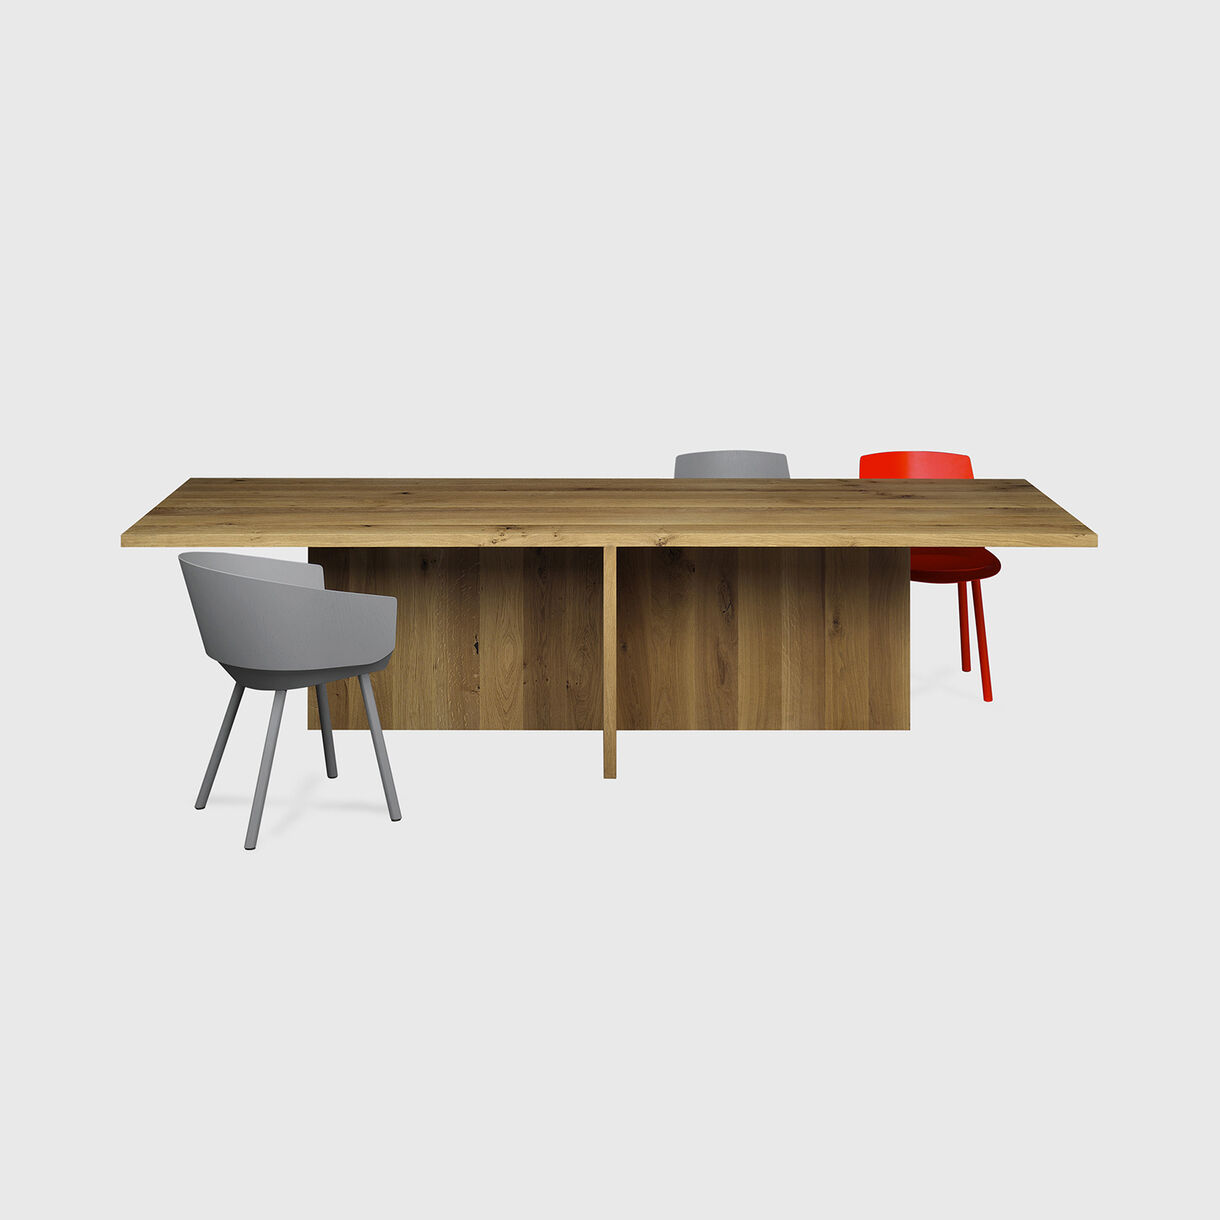 Zehn Table with Houdini Chairs